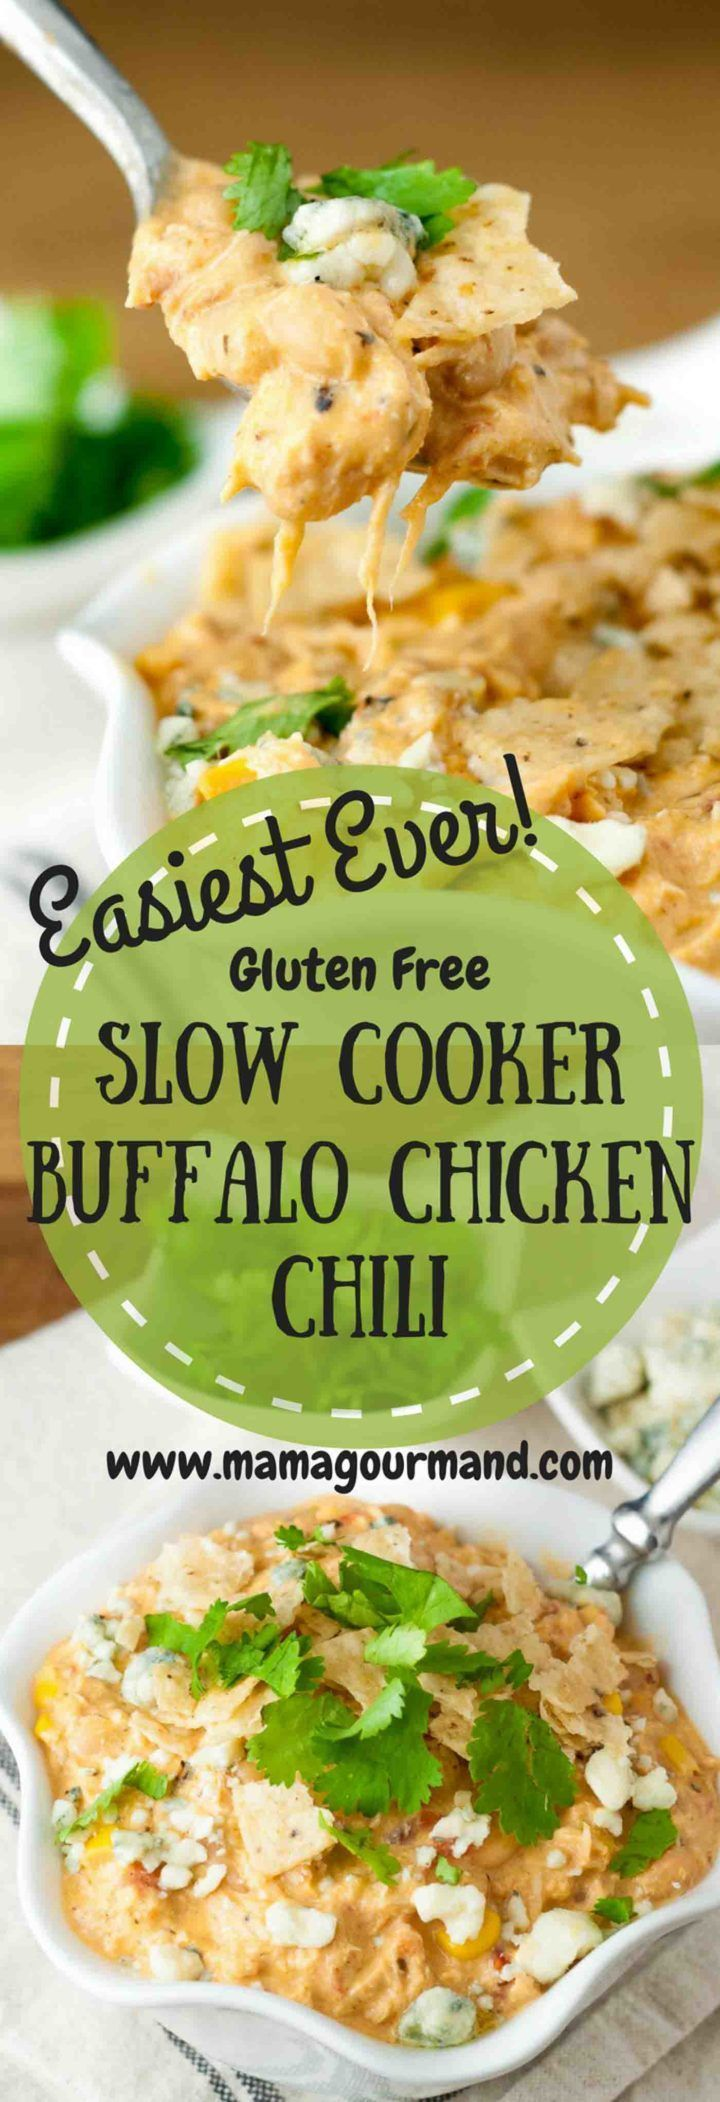 Look no further for your slow cooker creamy Buffalo Chicken Chili recipe. This one is it, hands down, and everyone will want the recipe. Absolutely perfect and delicious! www.mamagourmand.com